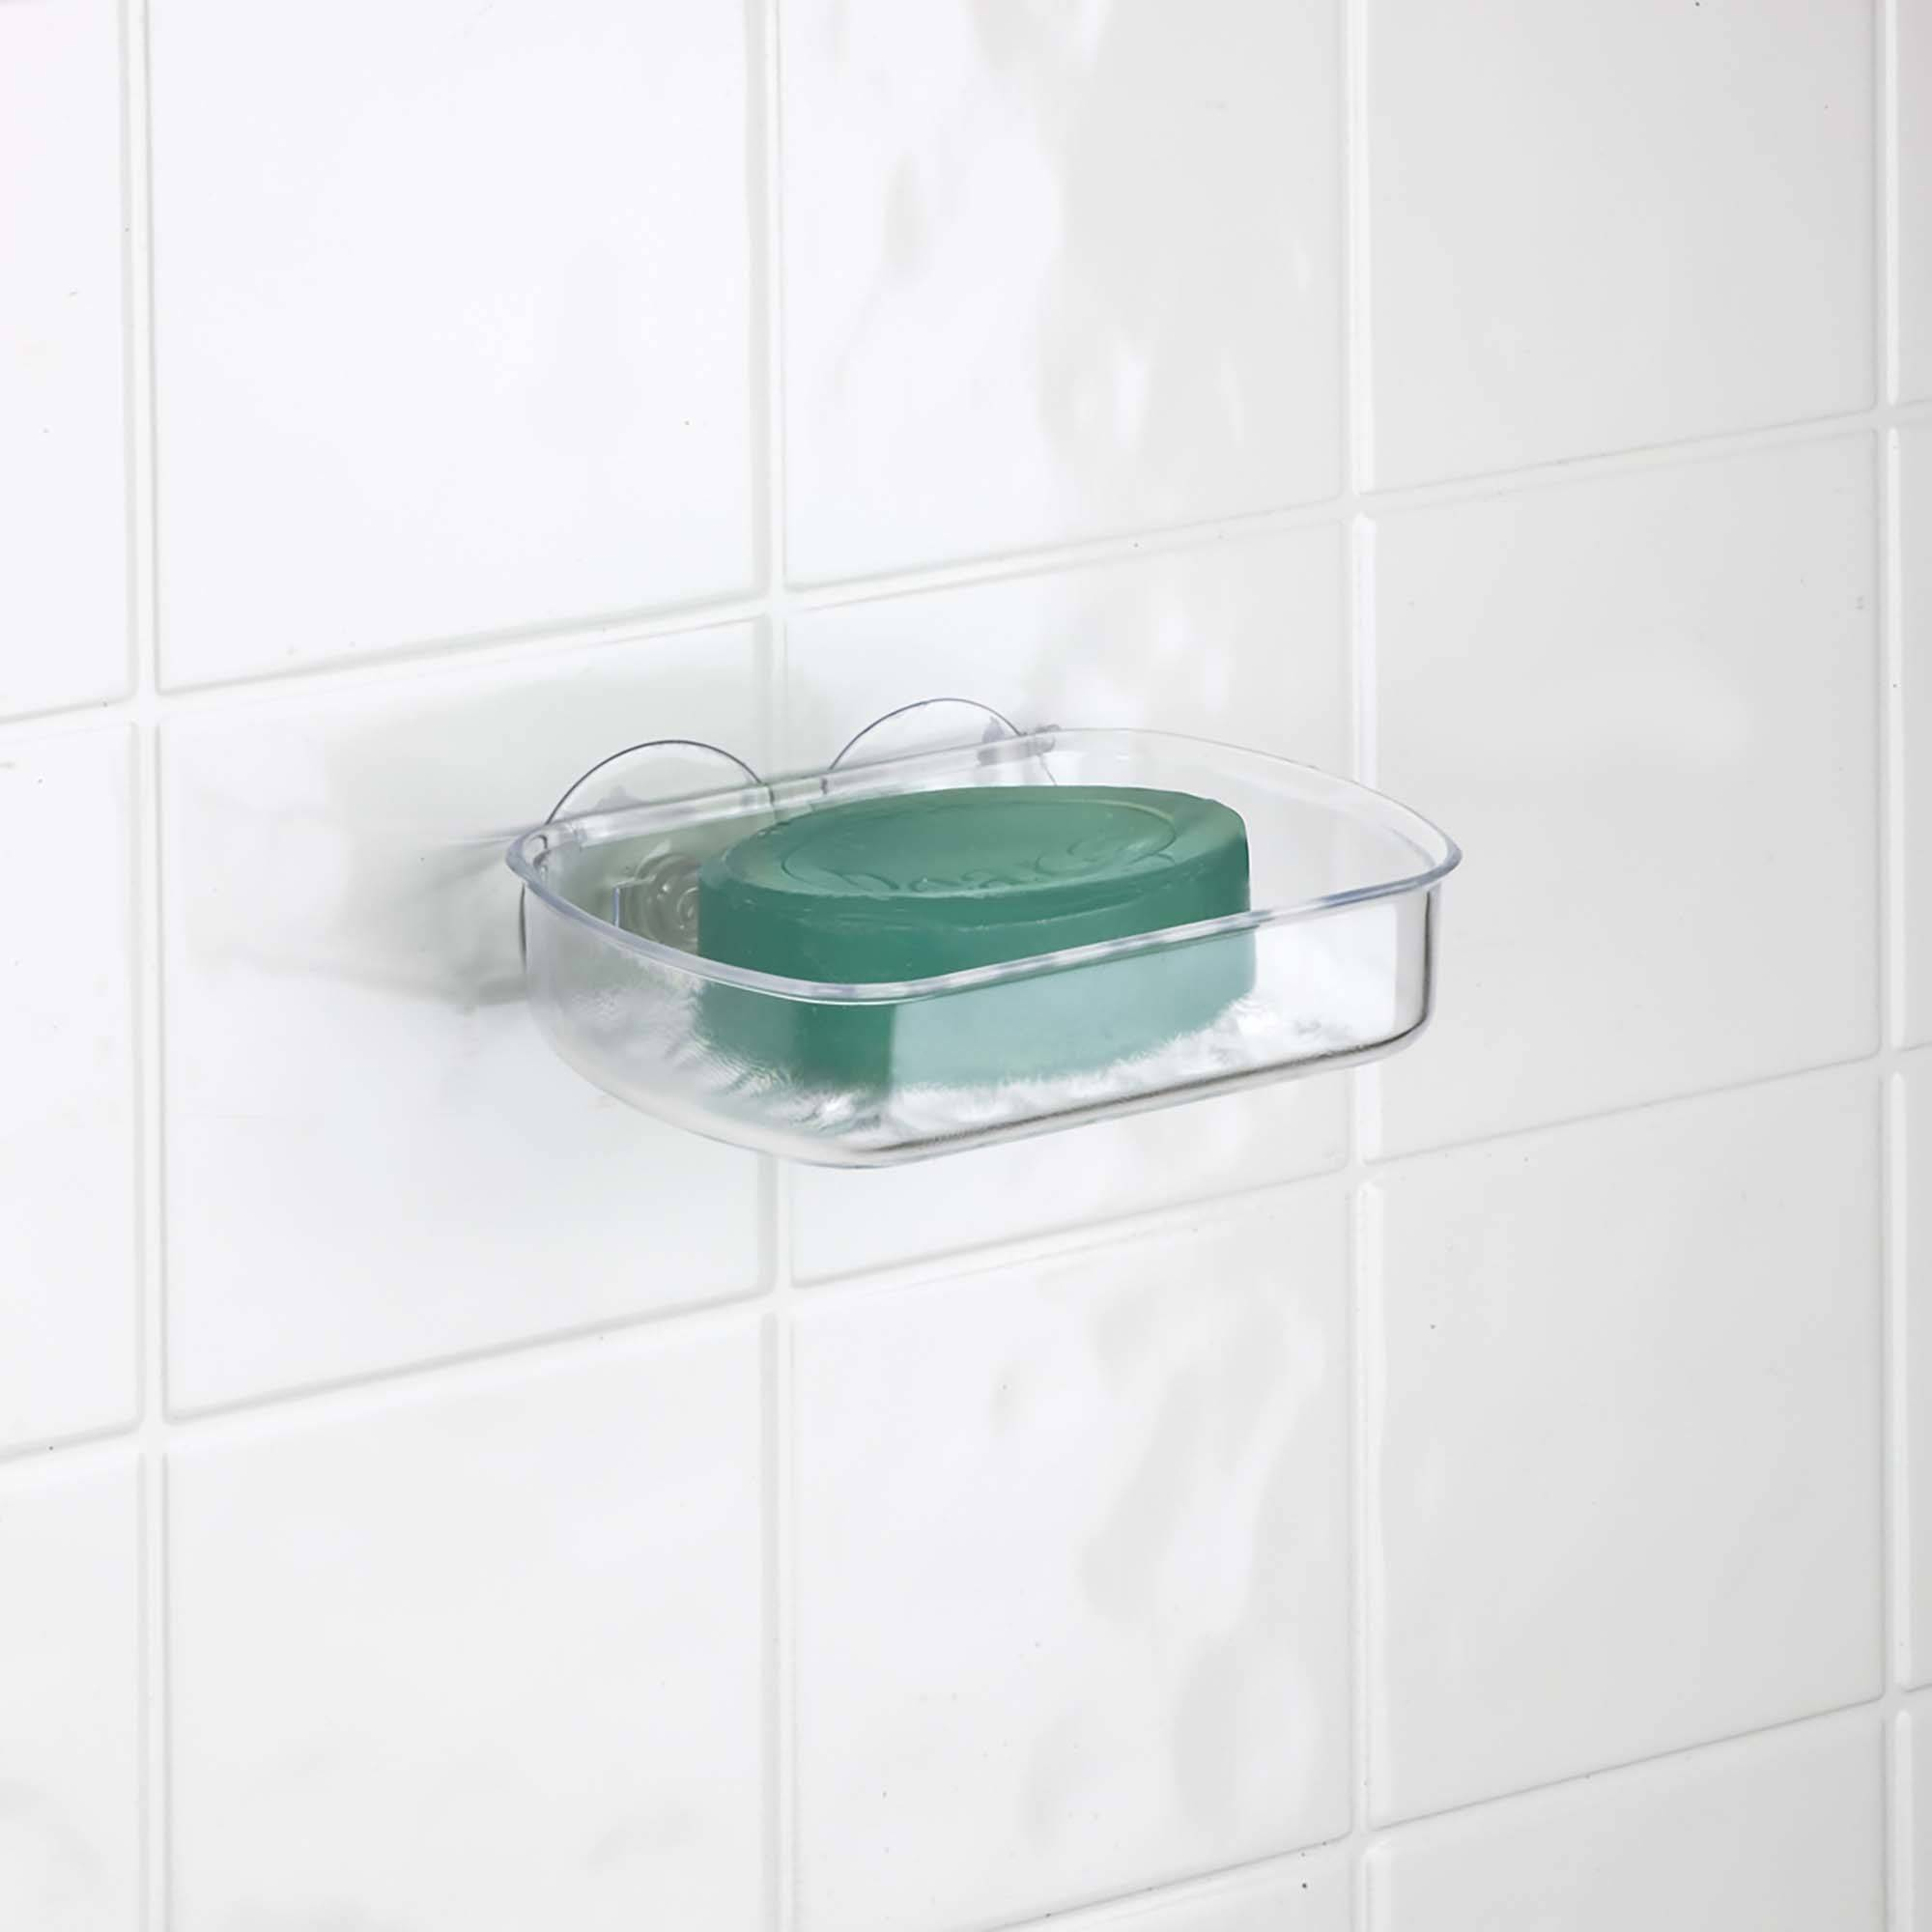 Ordinaire Bath Bliss Clear Suction Soap Dish   Walmart.com